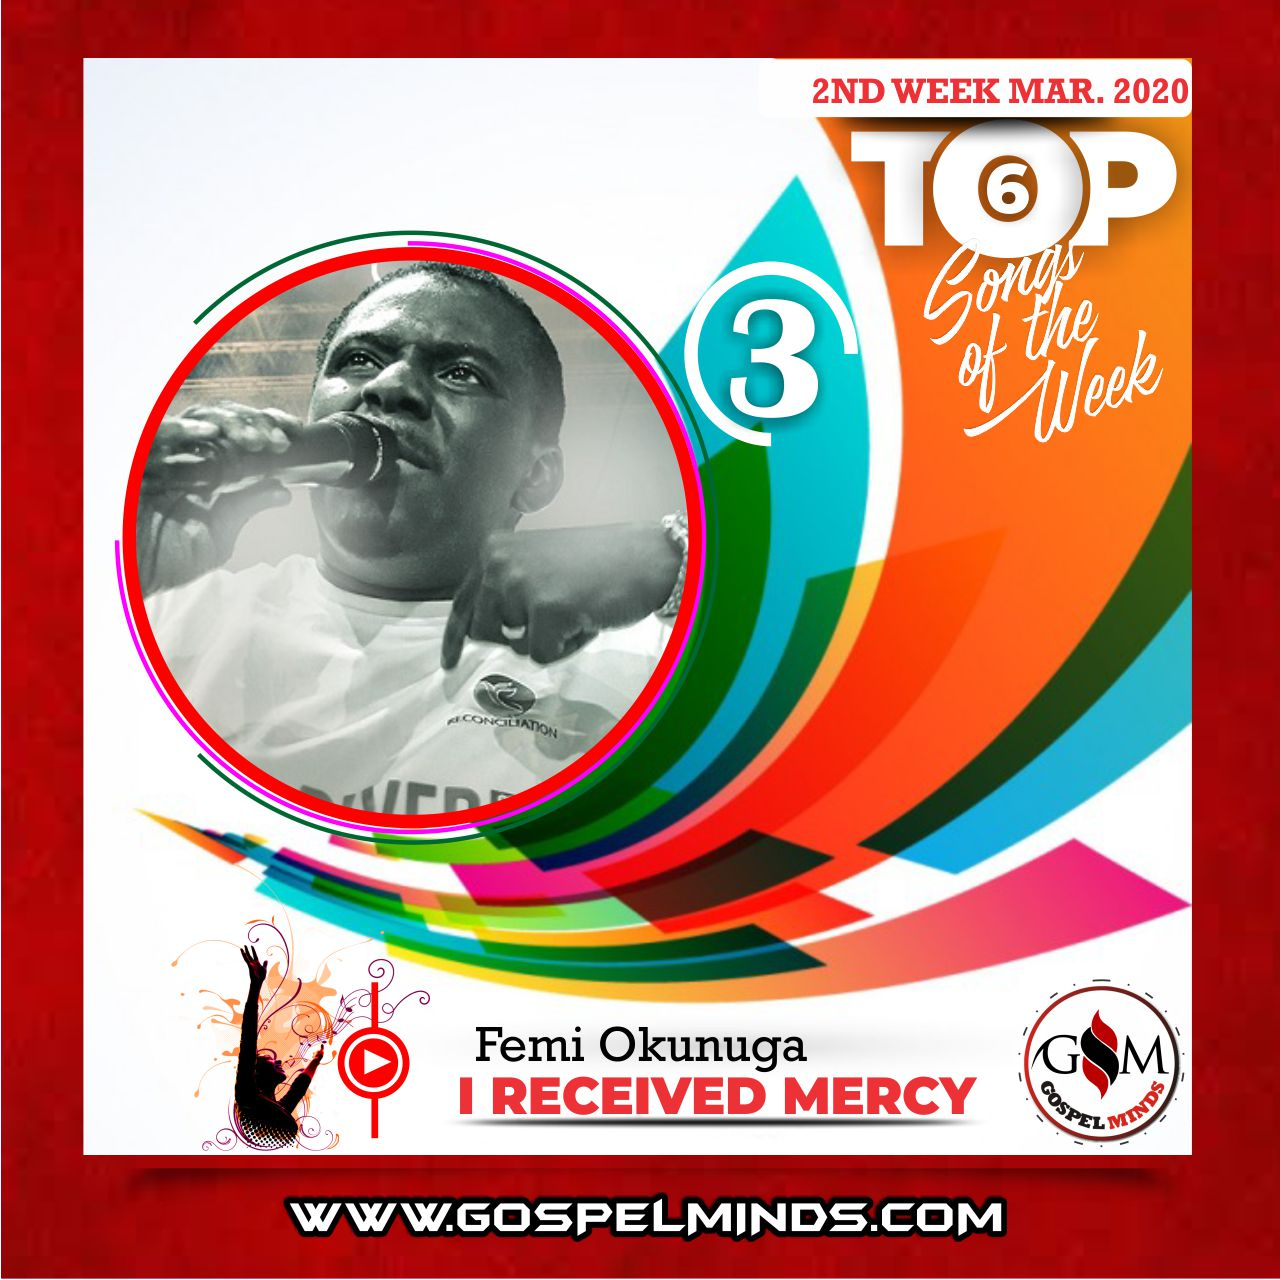 March 2nd Week 'Top 6 Gospel Songs Of The Week' Femi Okunuga - I Received Mercy